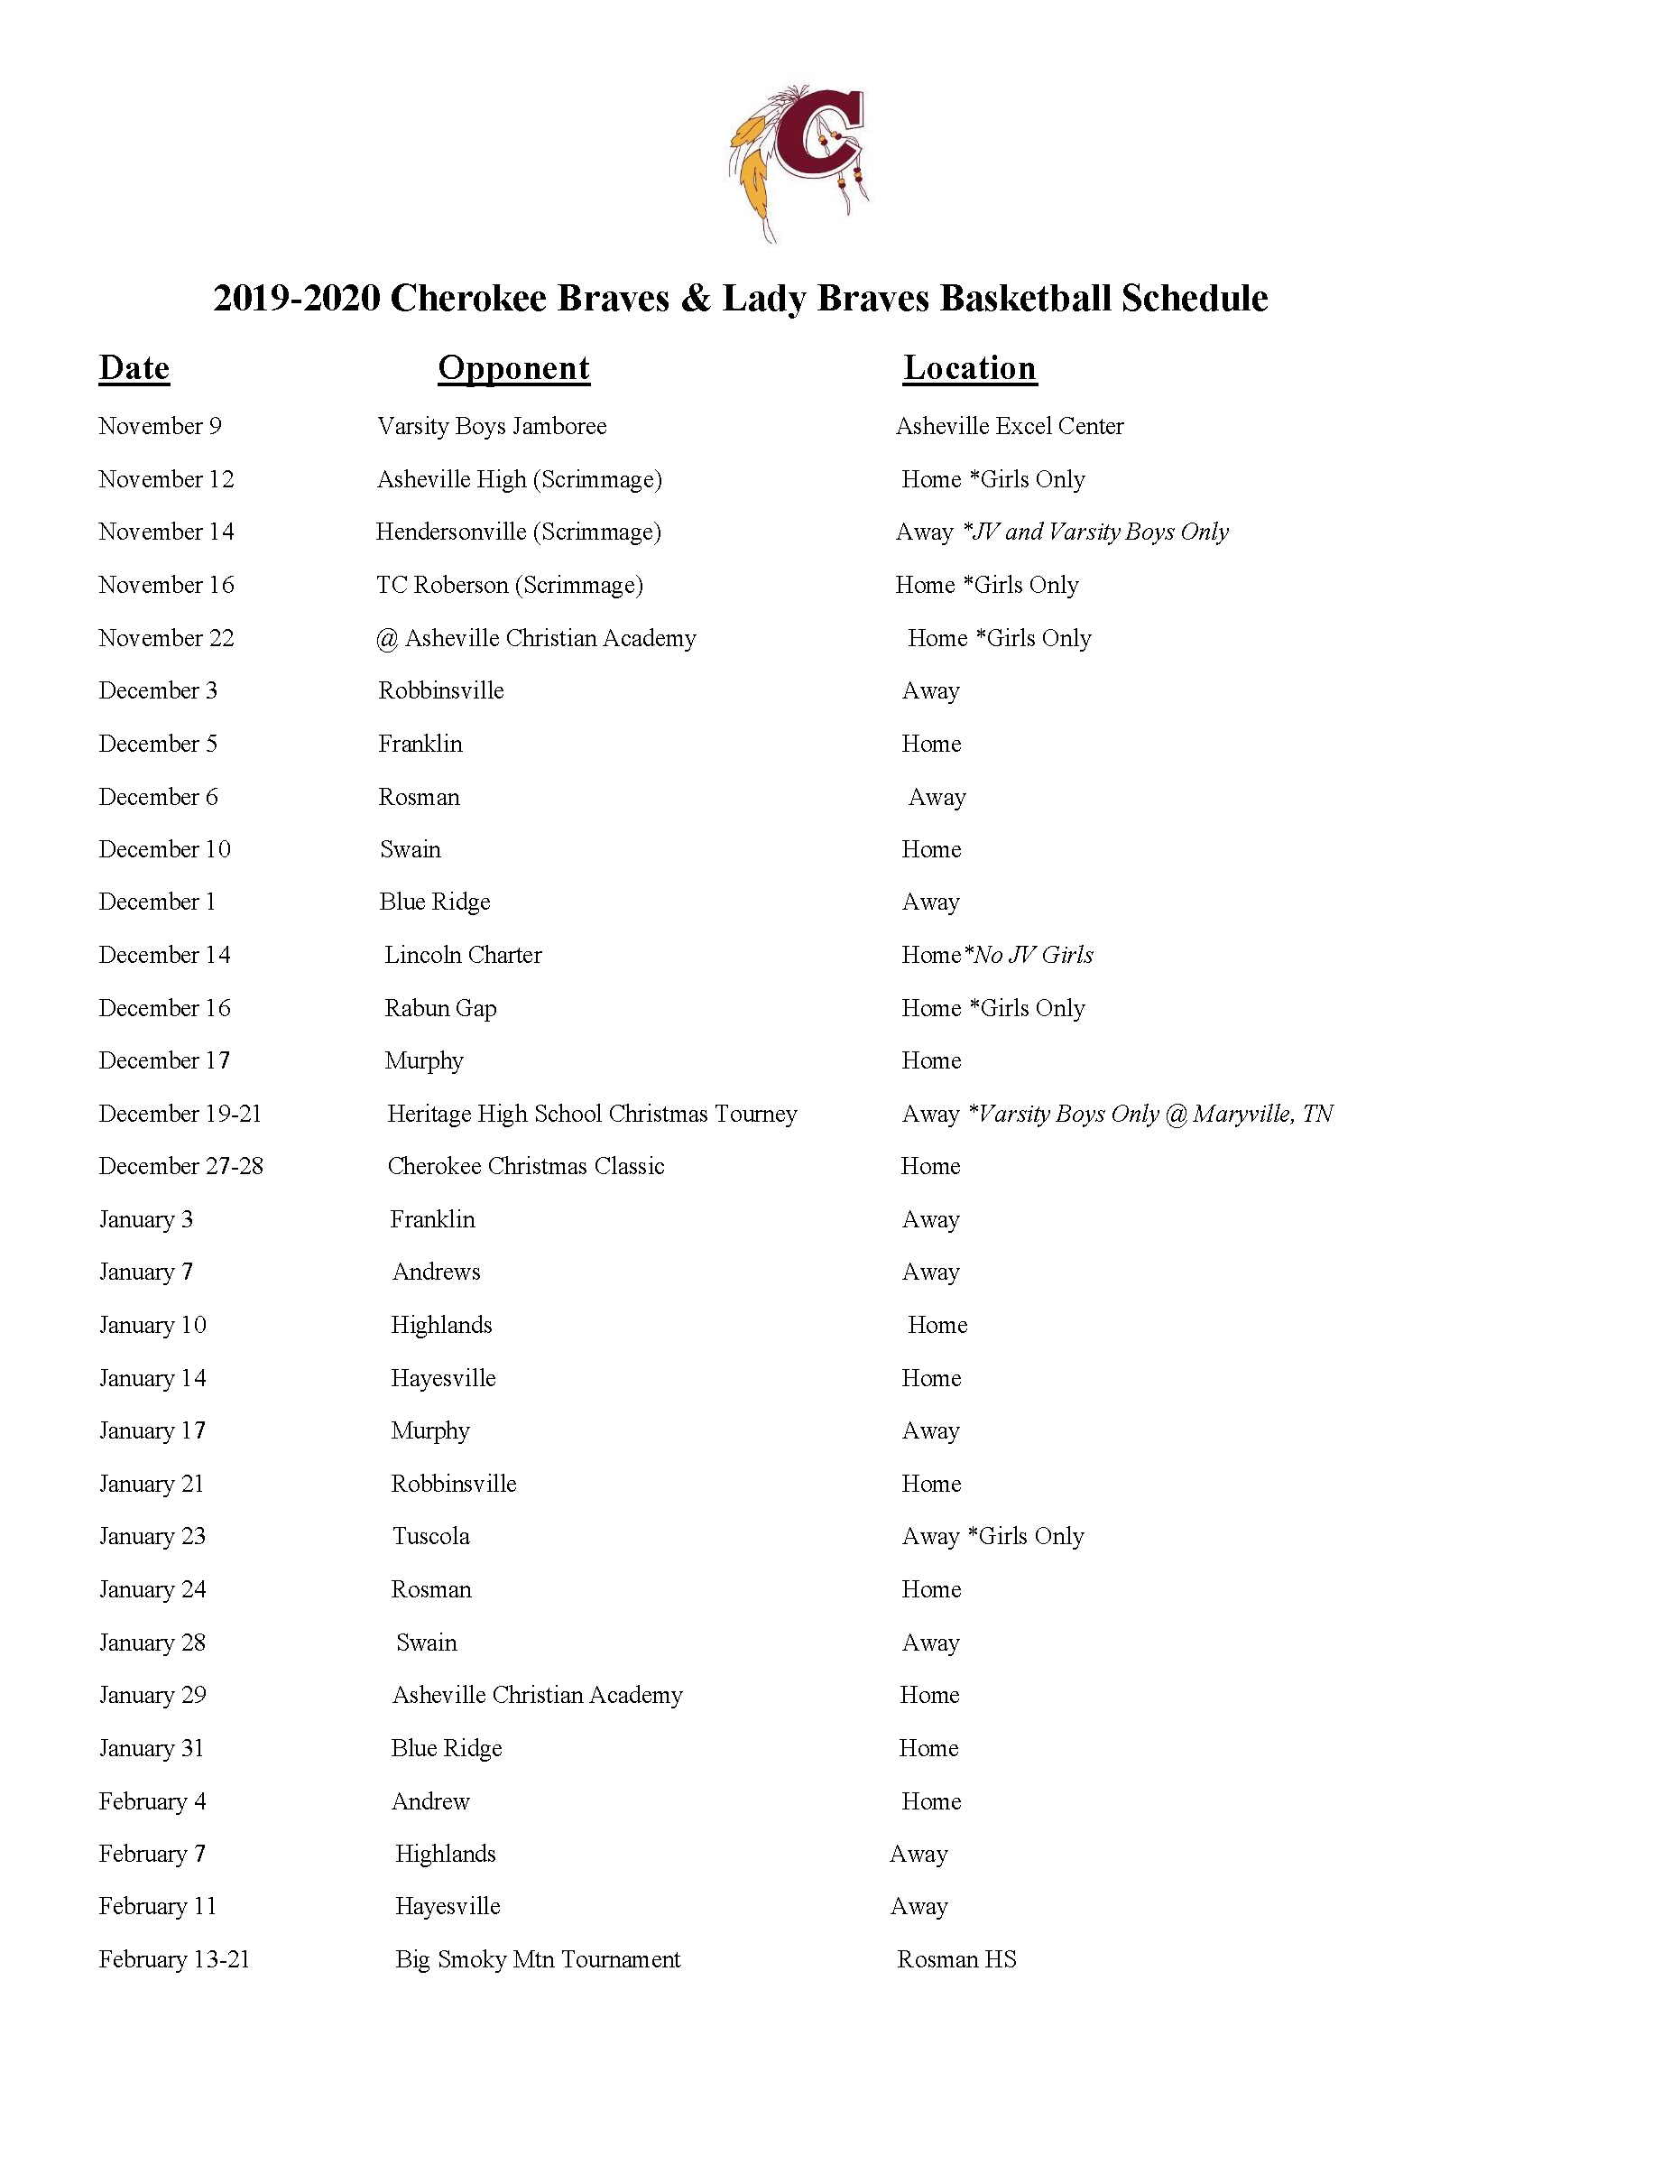 2019-2020 CHS Revised Basketball Schedule